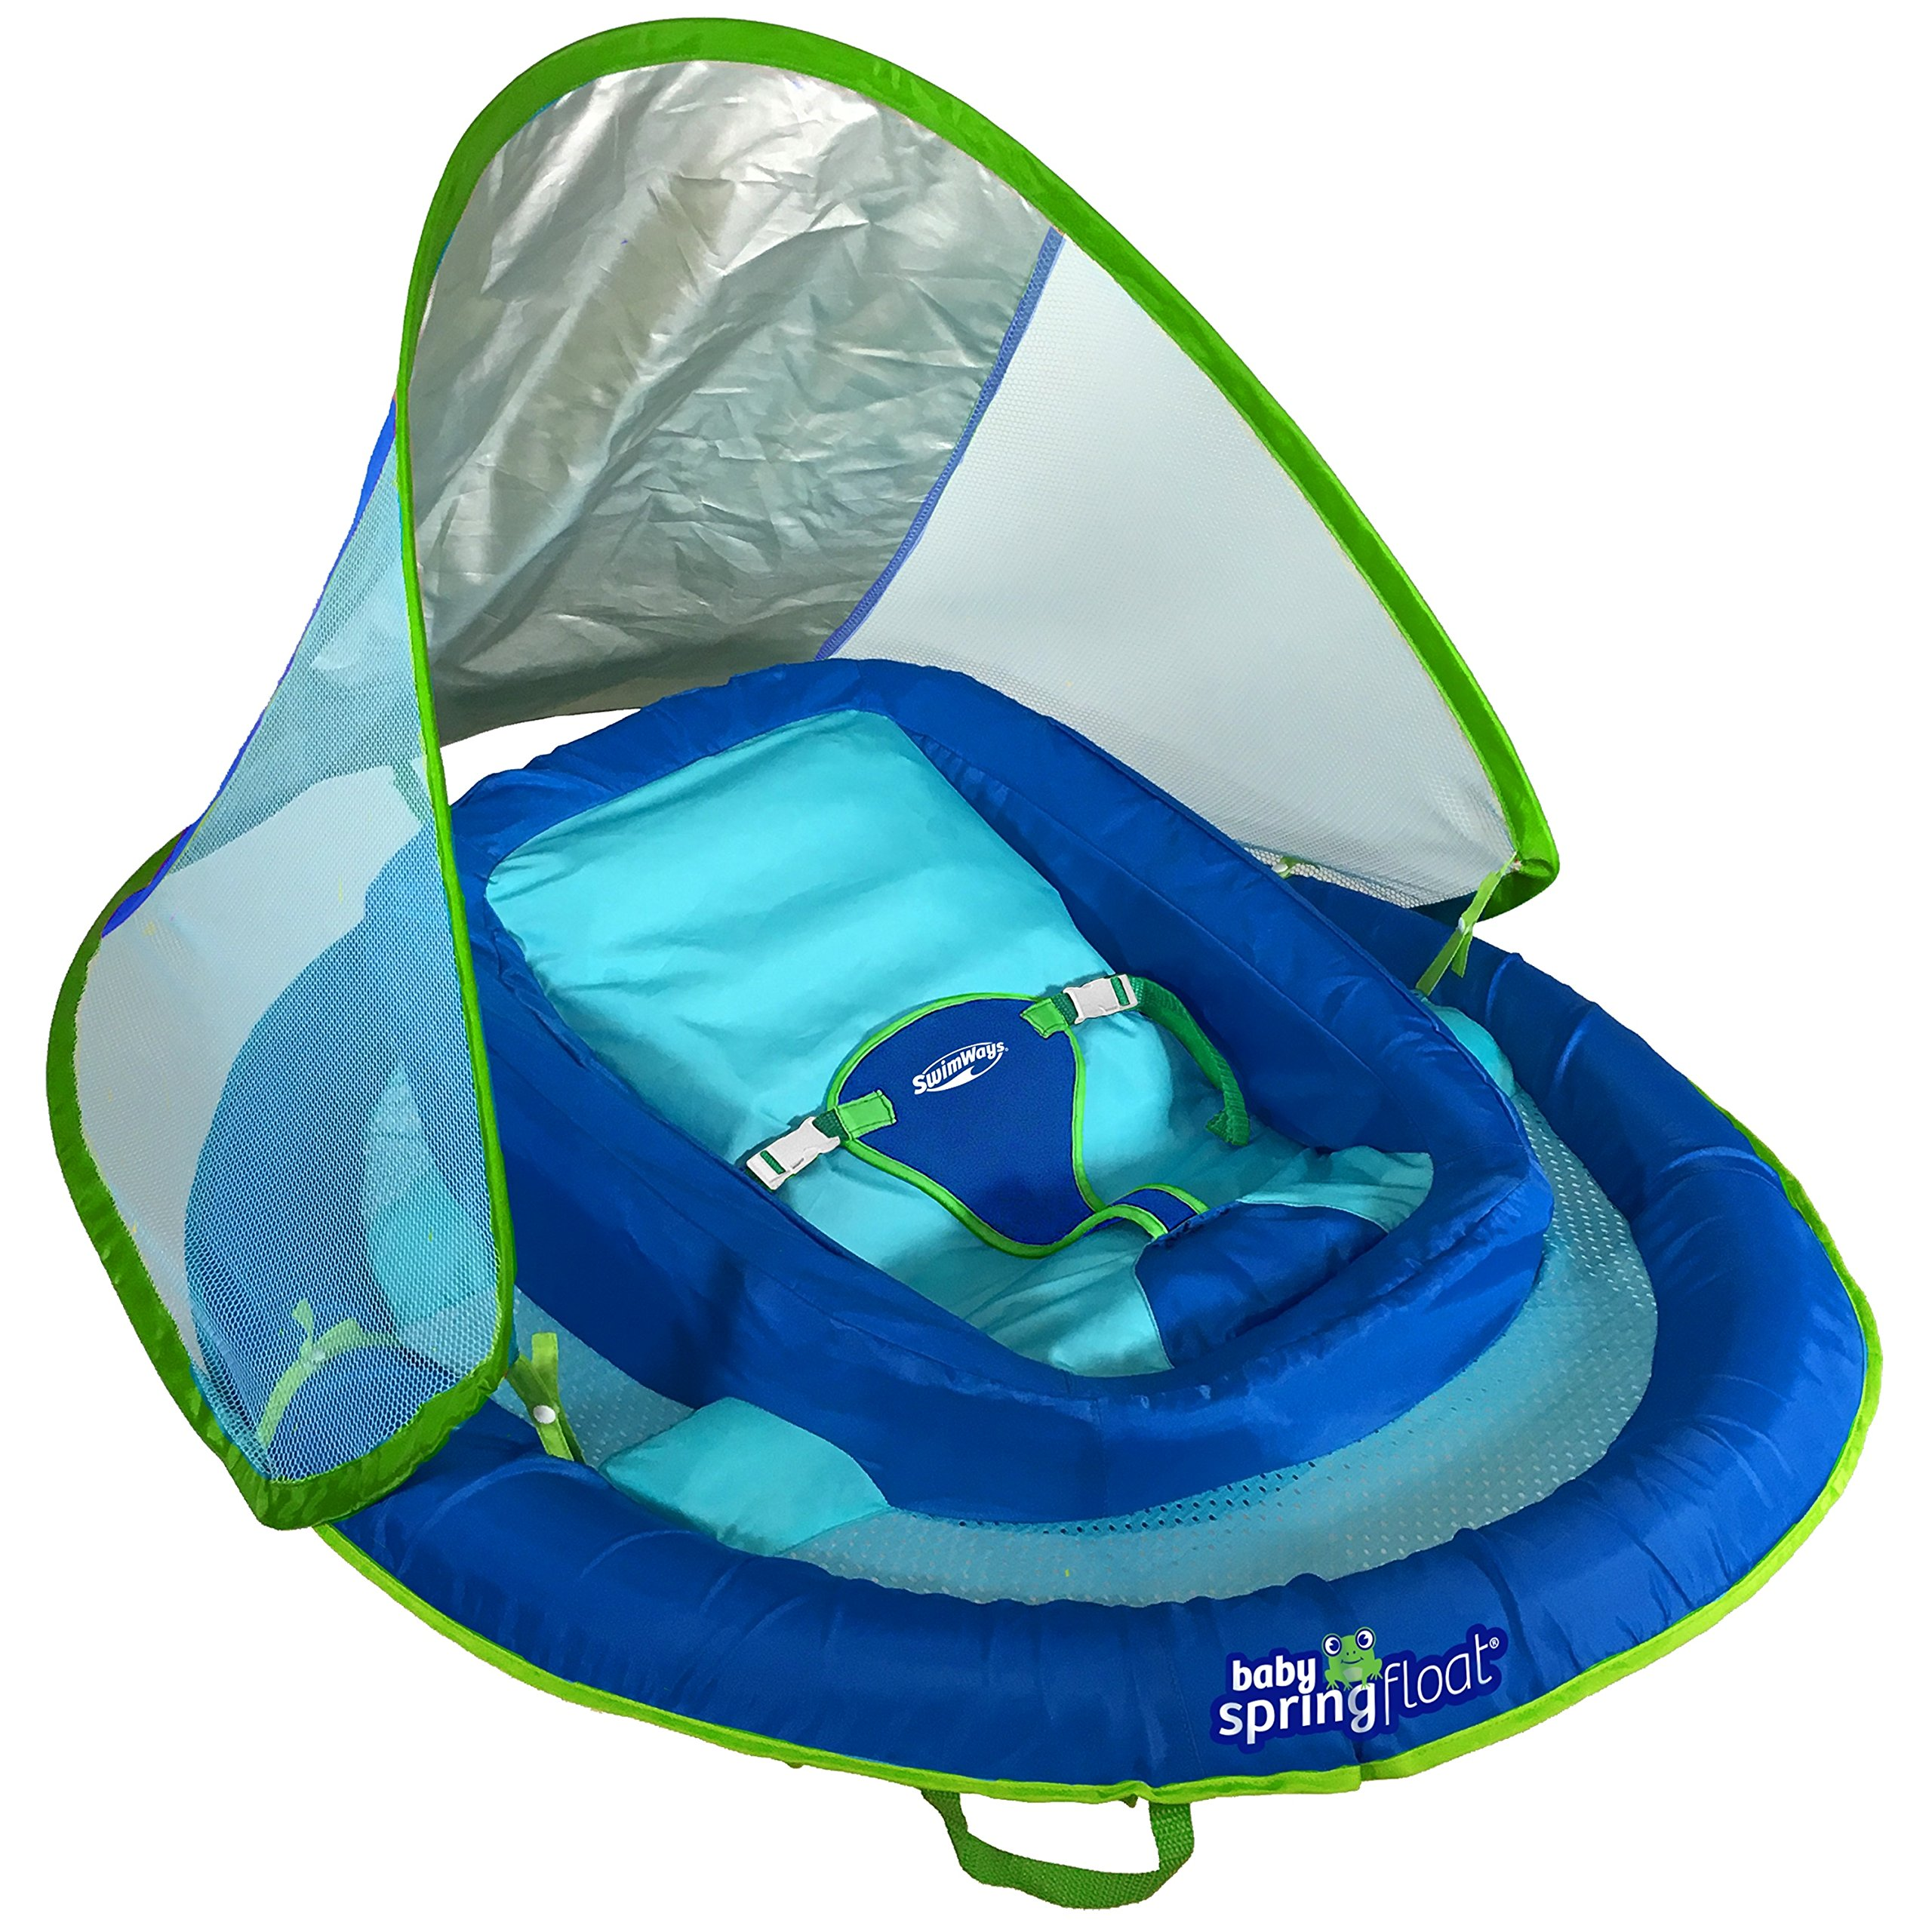 SwimWays Infant Baby Spring Float with Adjustable Sun Canopy - Blue by SwimWays